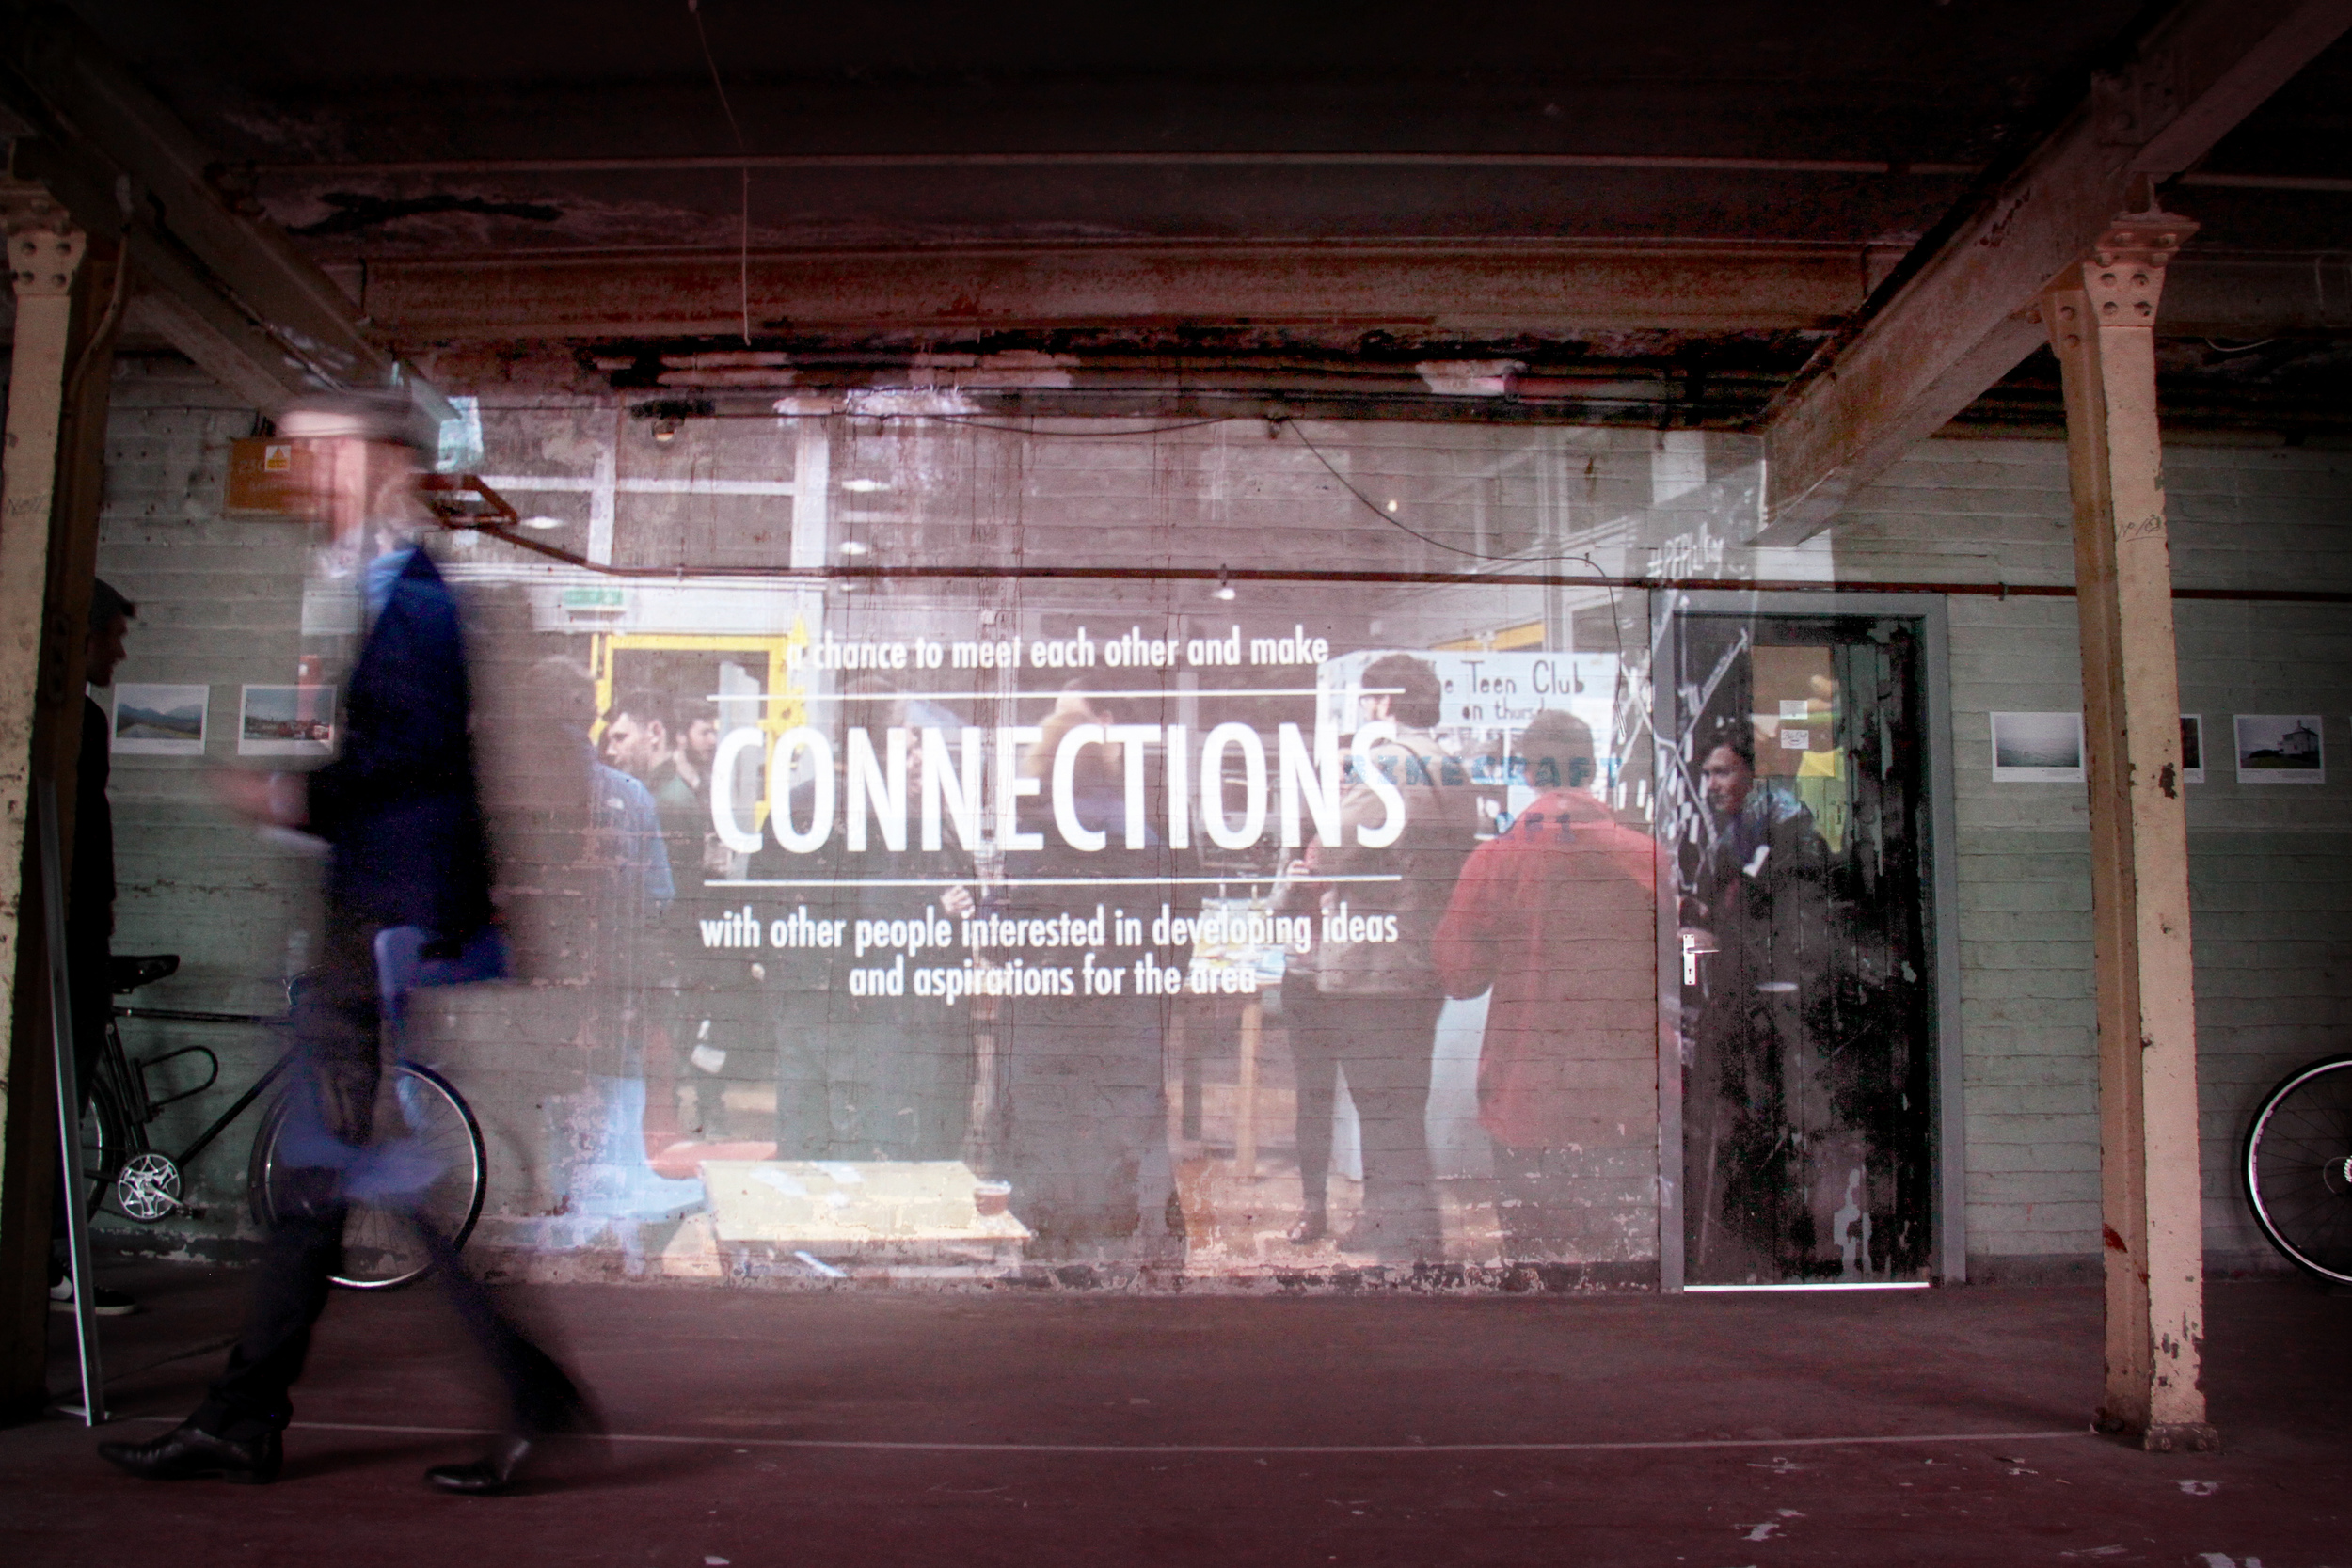 Connection to Place exhibition and film screenings curated by HERE+NOW at The Biscuit Factory